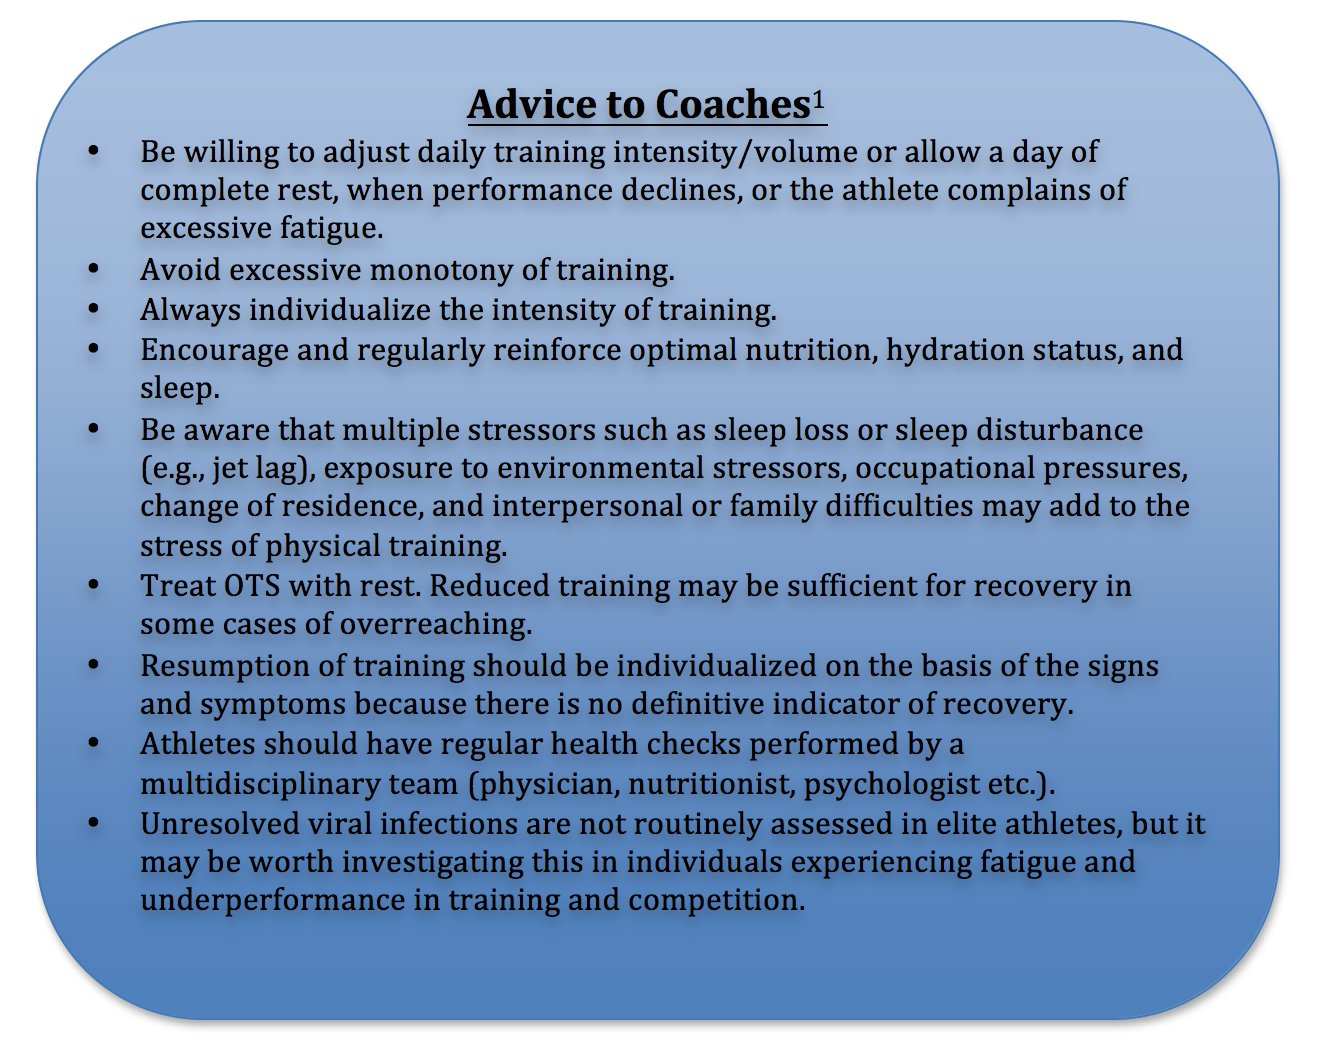 Advice_to_Coaches